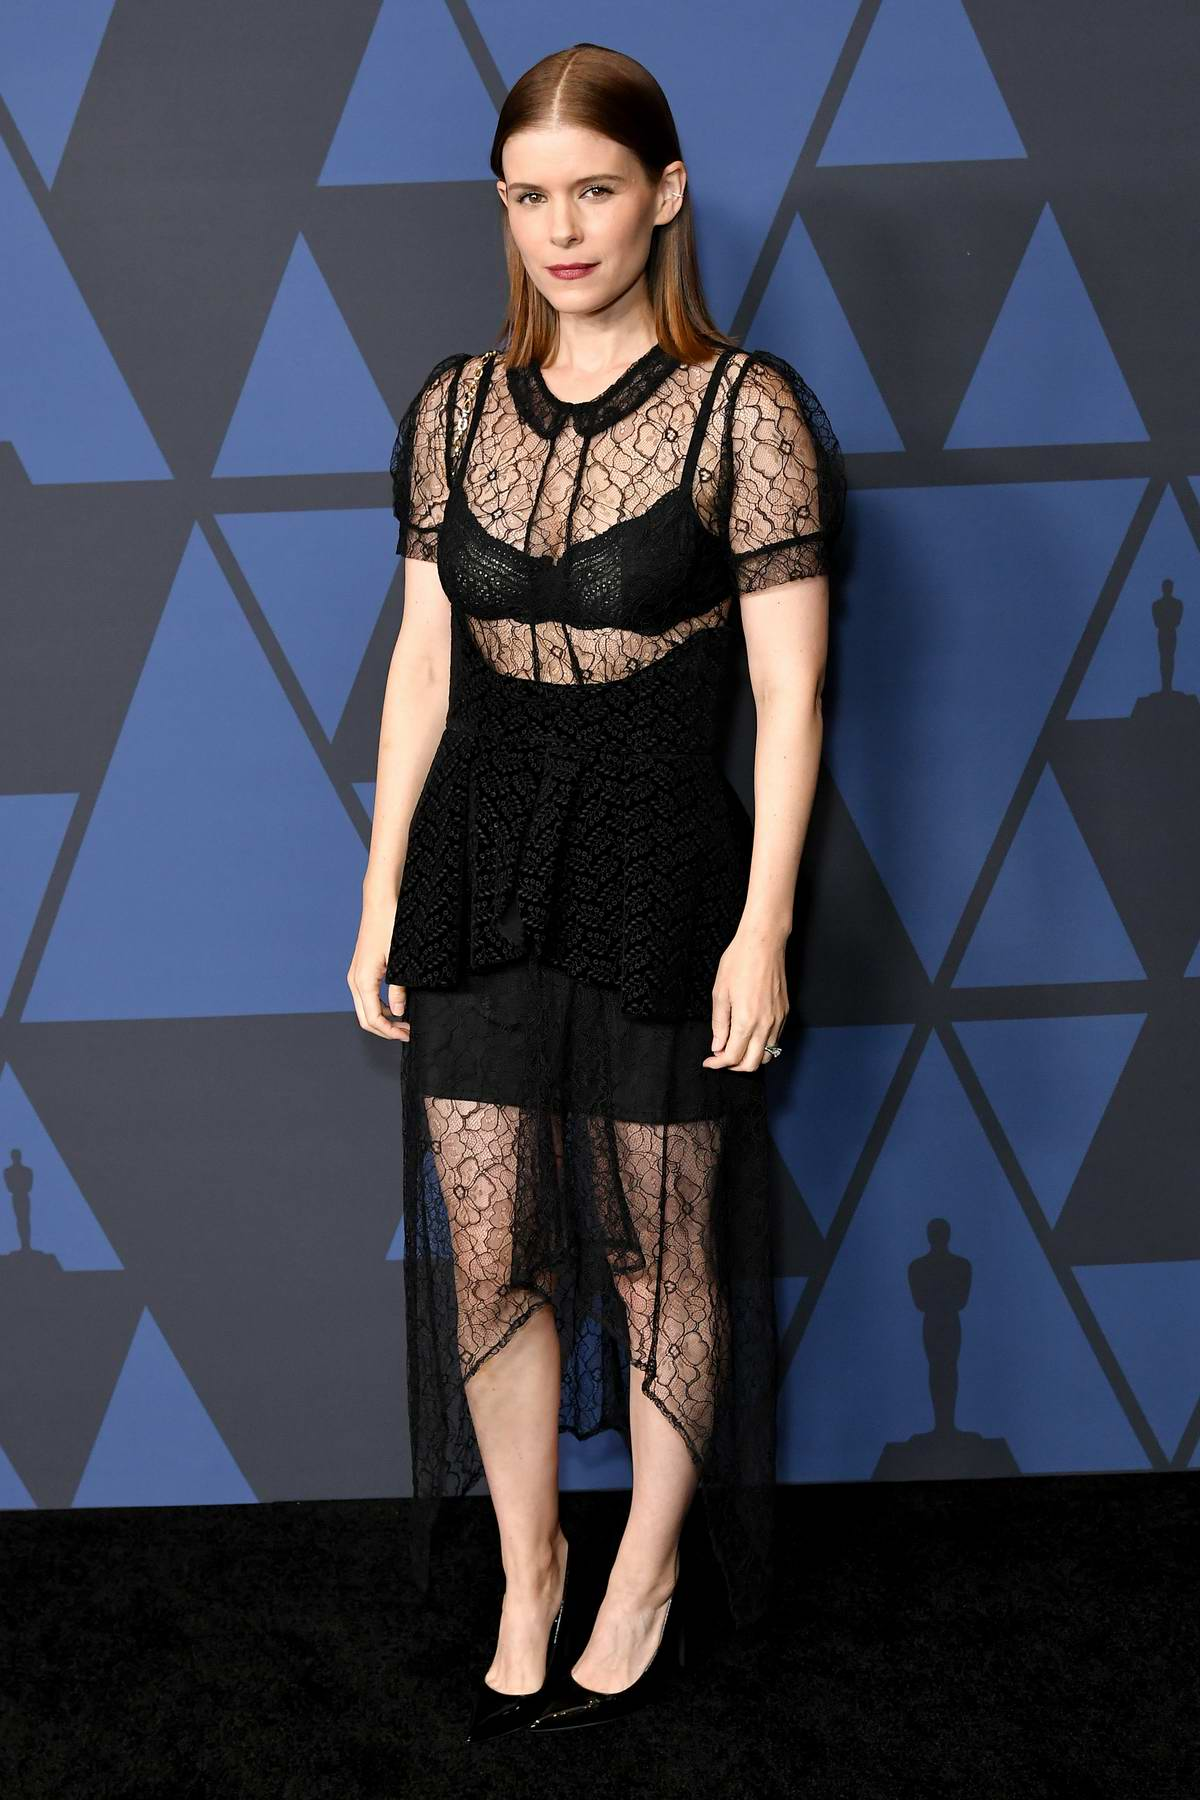 Kate Mara attends the Academy of Motion Picture Arts and Sciences' 11th Annual Governors Awards in Hollywood, California